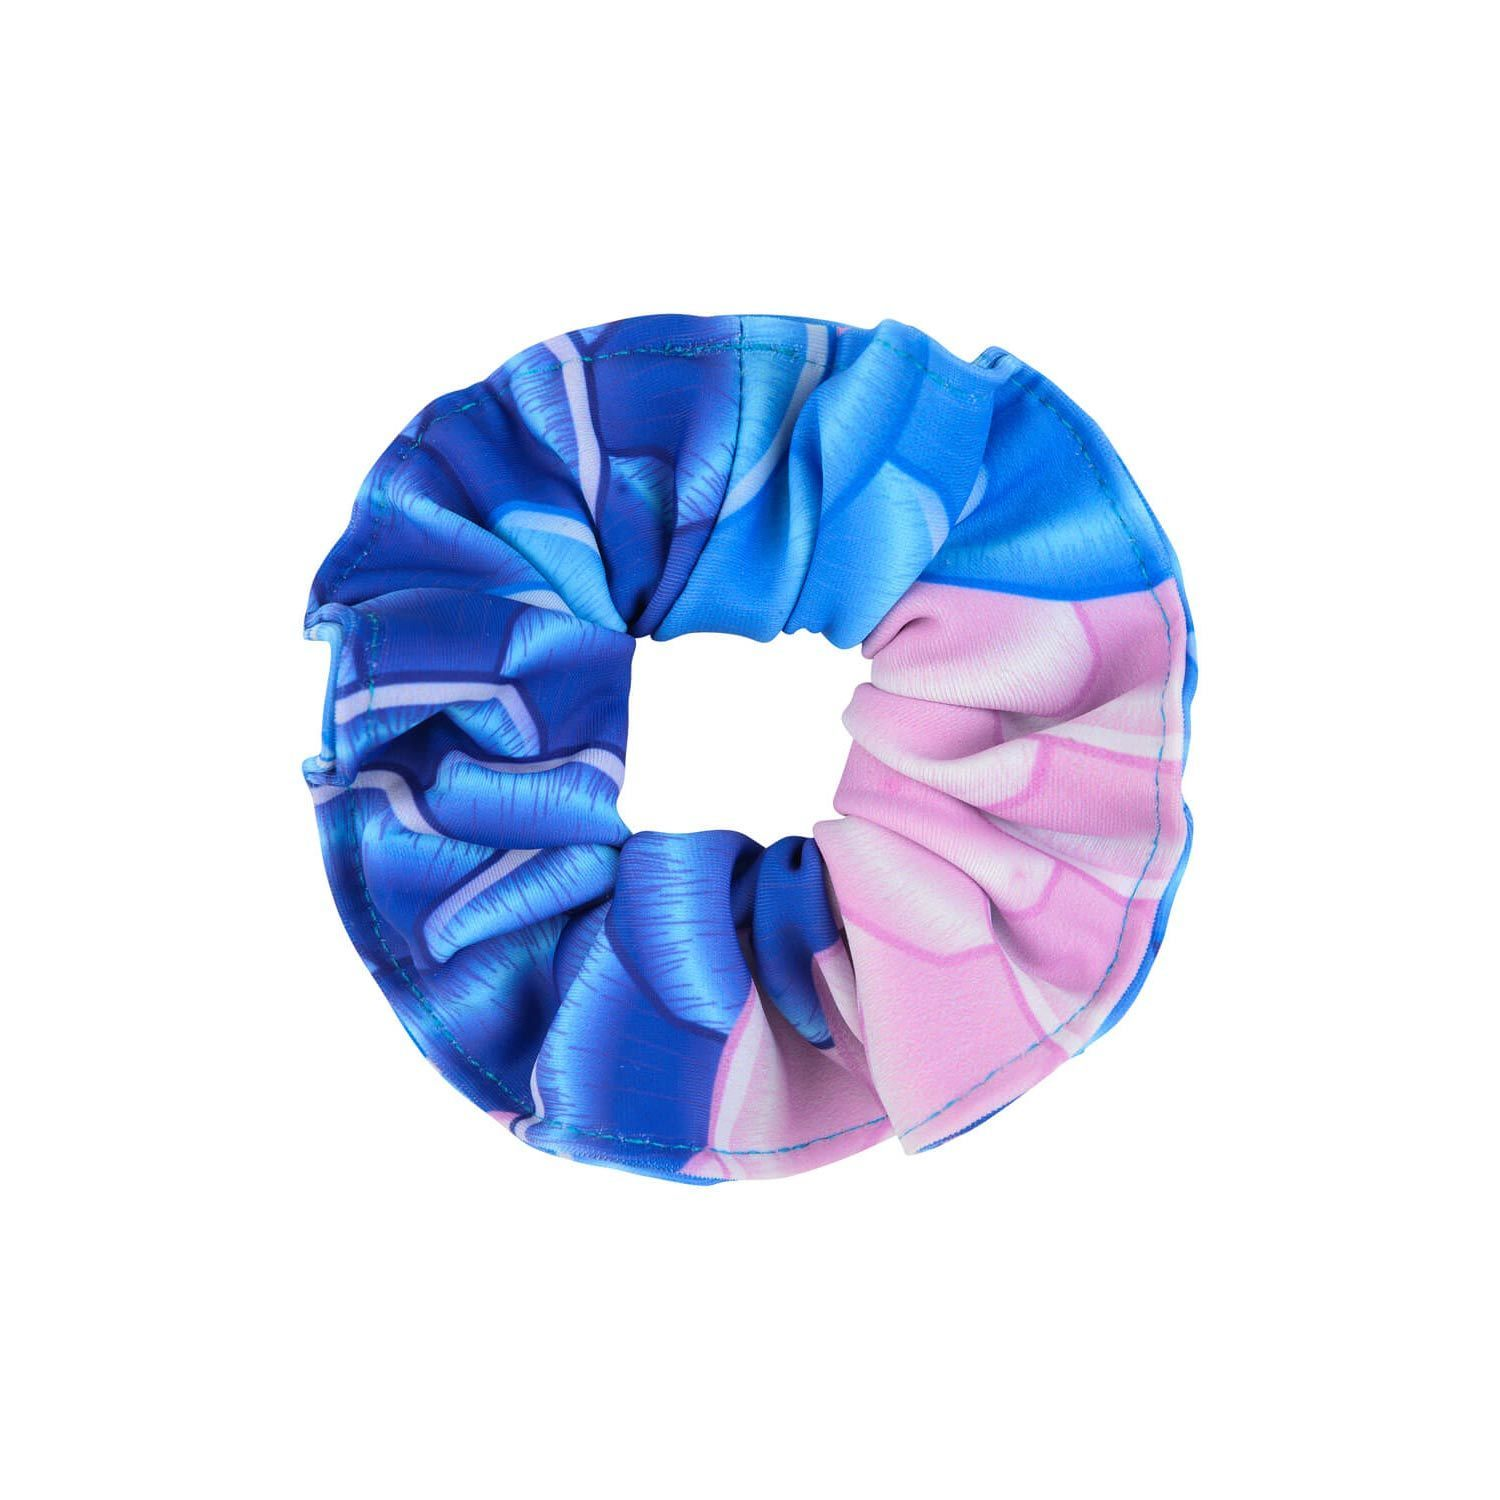 Mayfair Poppy Mermaid Hair Scrunchie